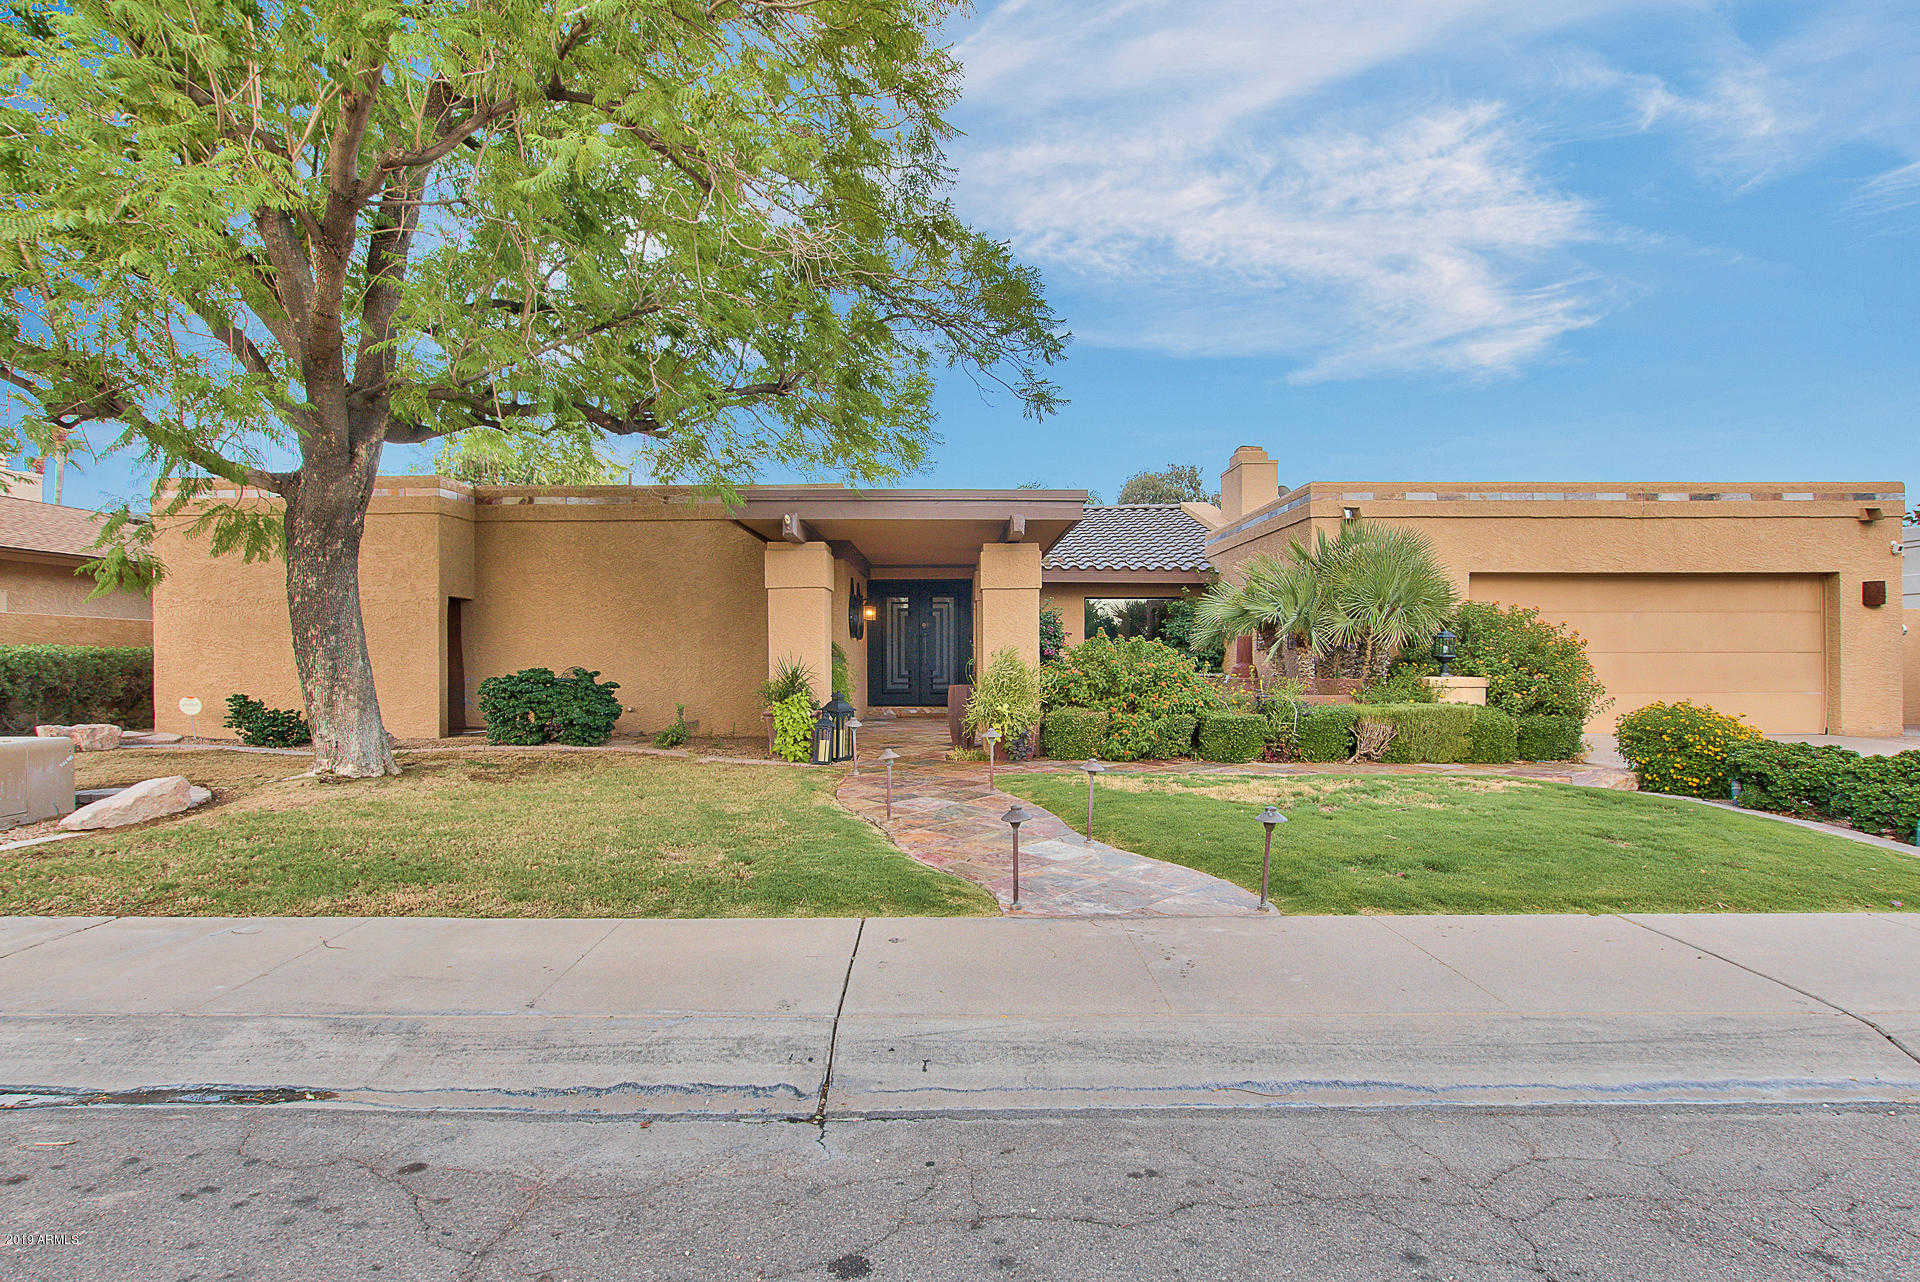 $750,000 - 4Br/2Ba - Home for Sale in Heritage Terrace, Scottsdale